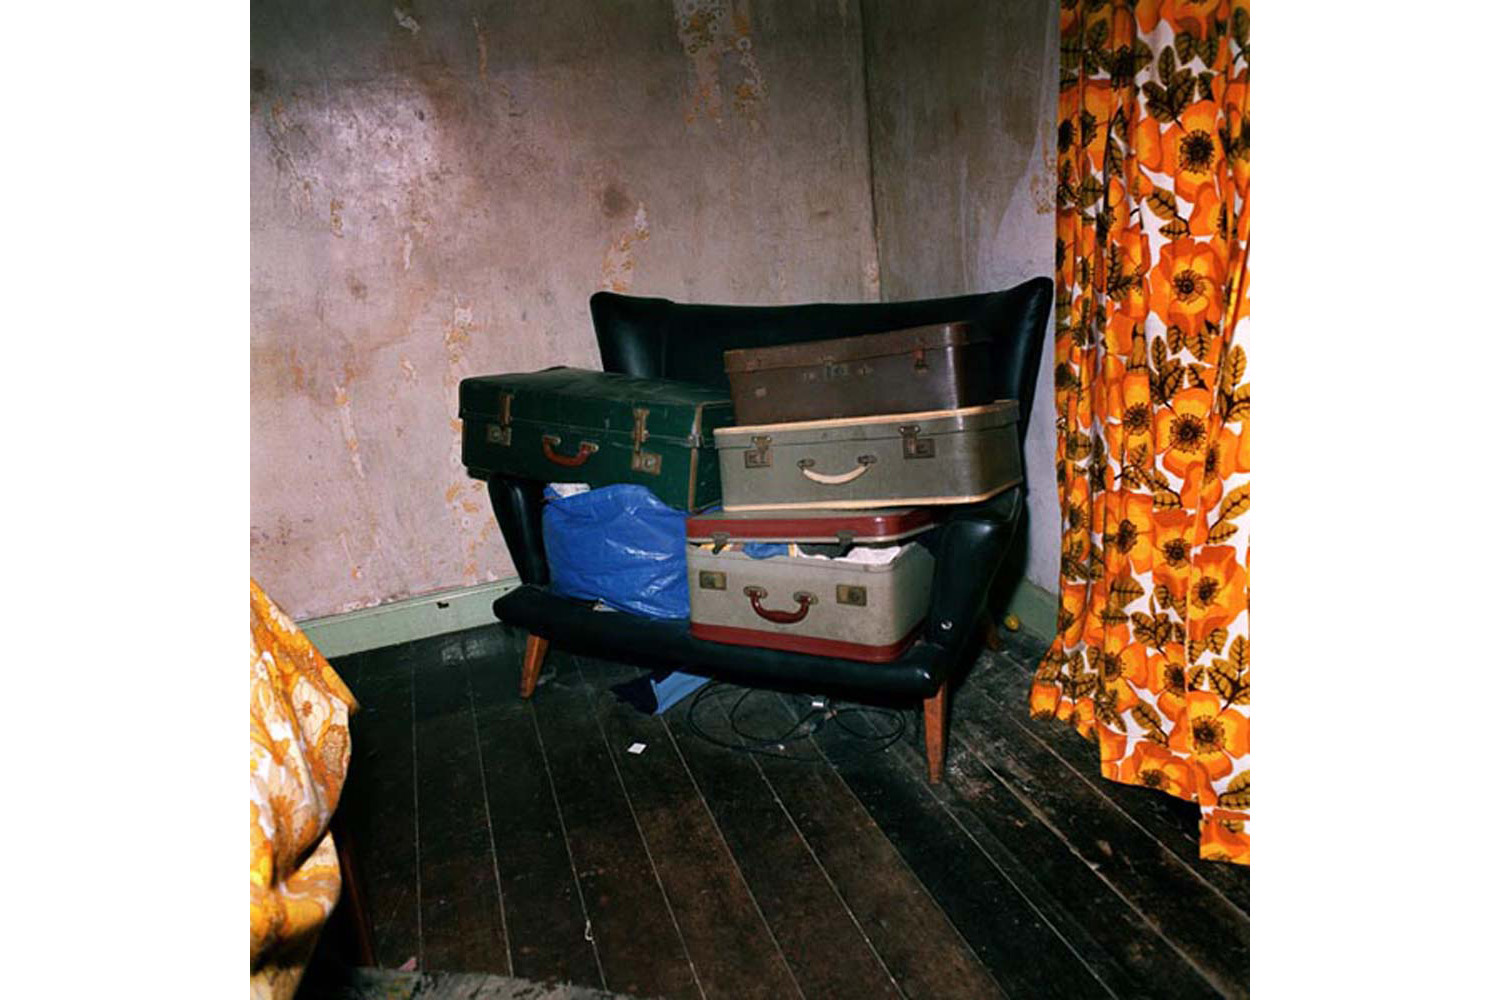 From the series Pictures from the Real World, made in Derby, UK from 1987-88.